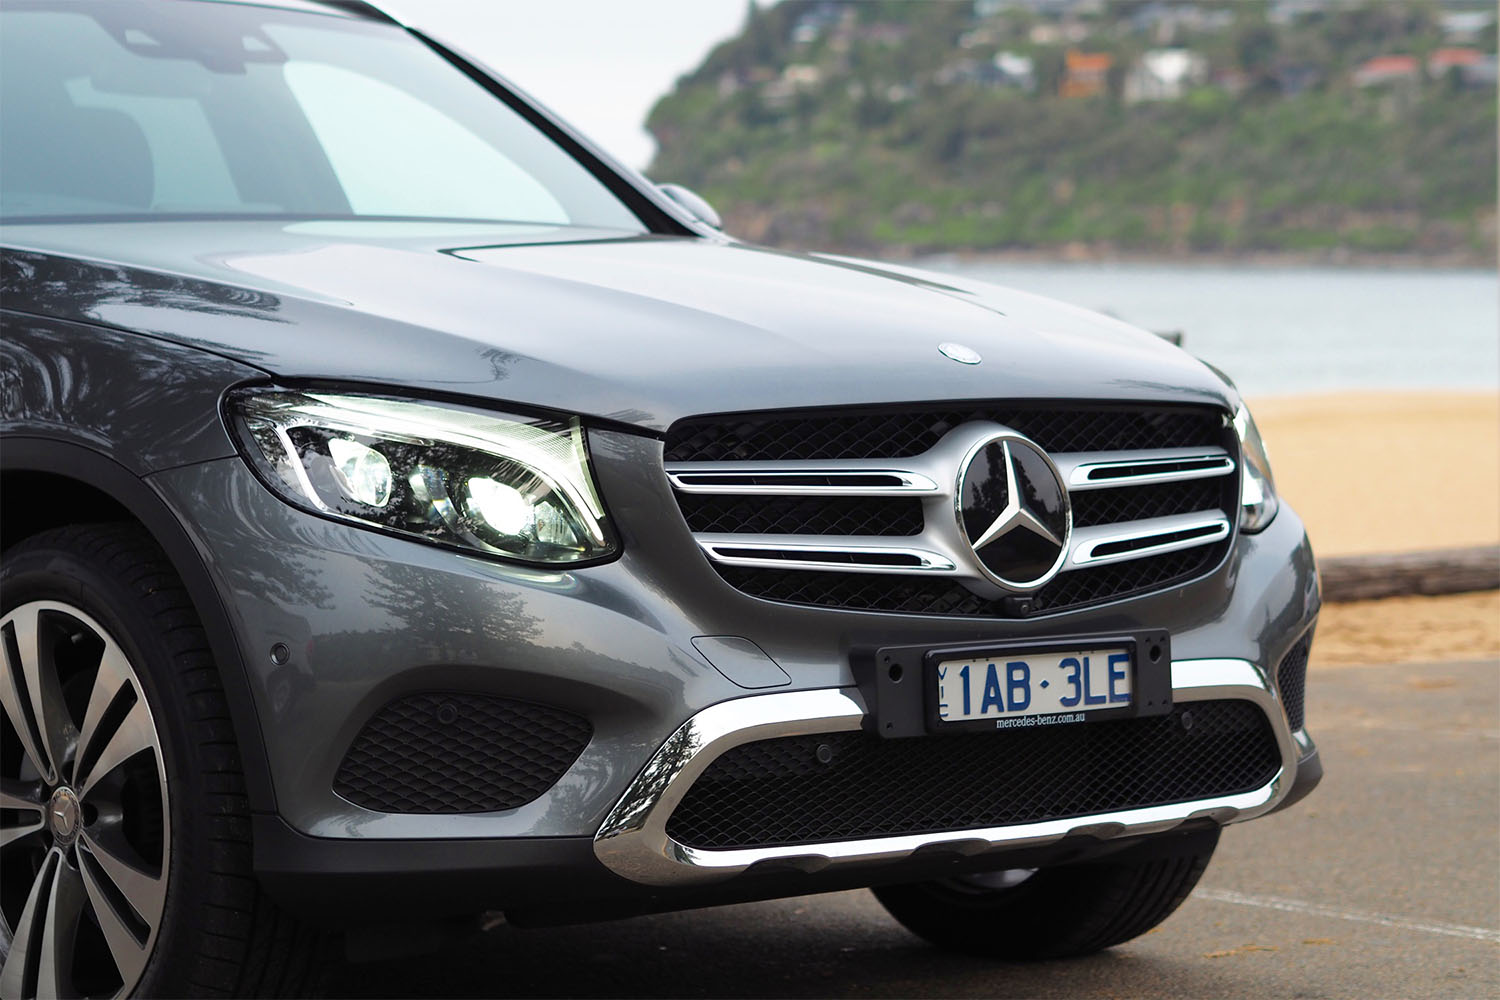 Mercedes-Benz GLC 250d Review